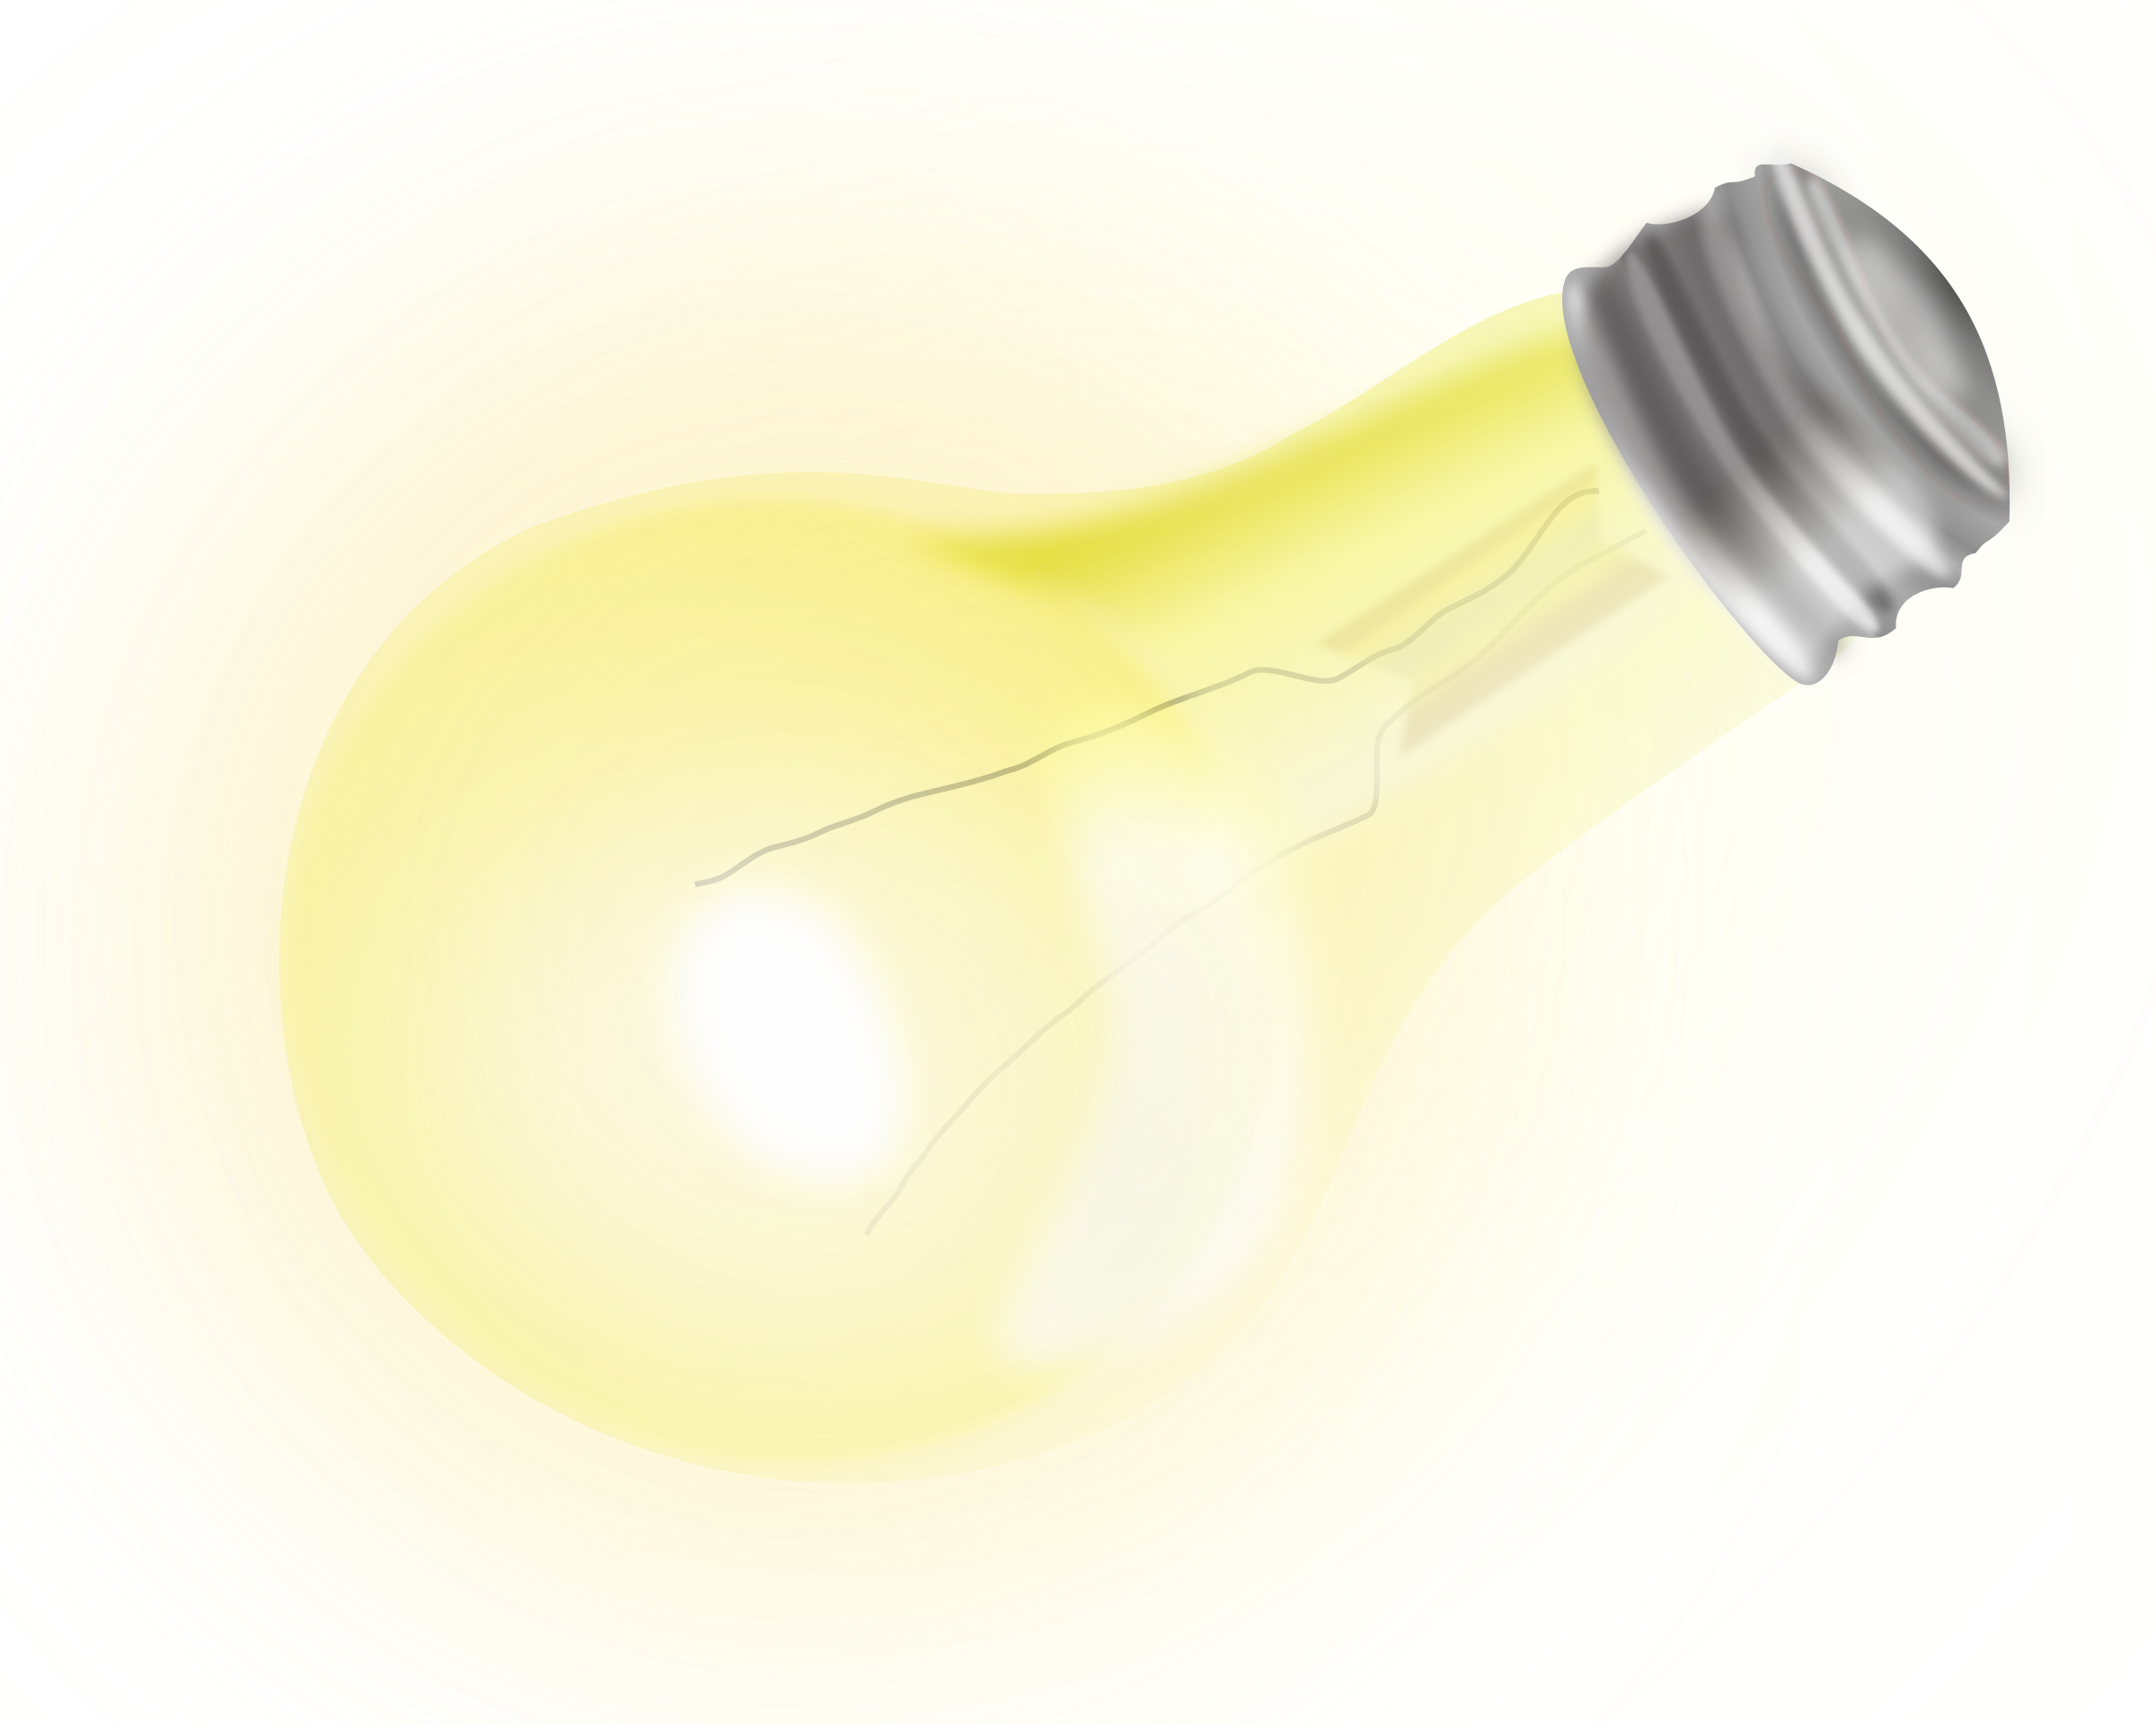 Nice Light Bulb by gatuus